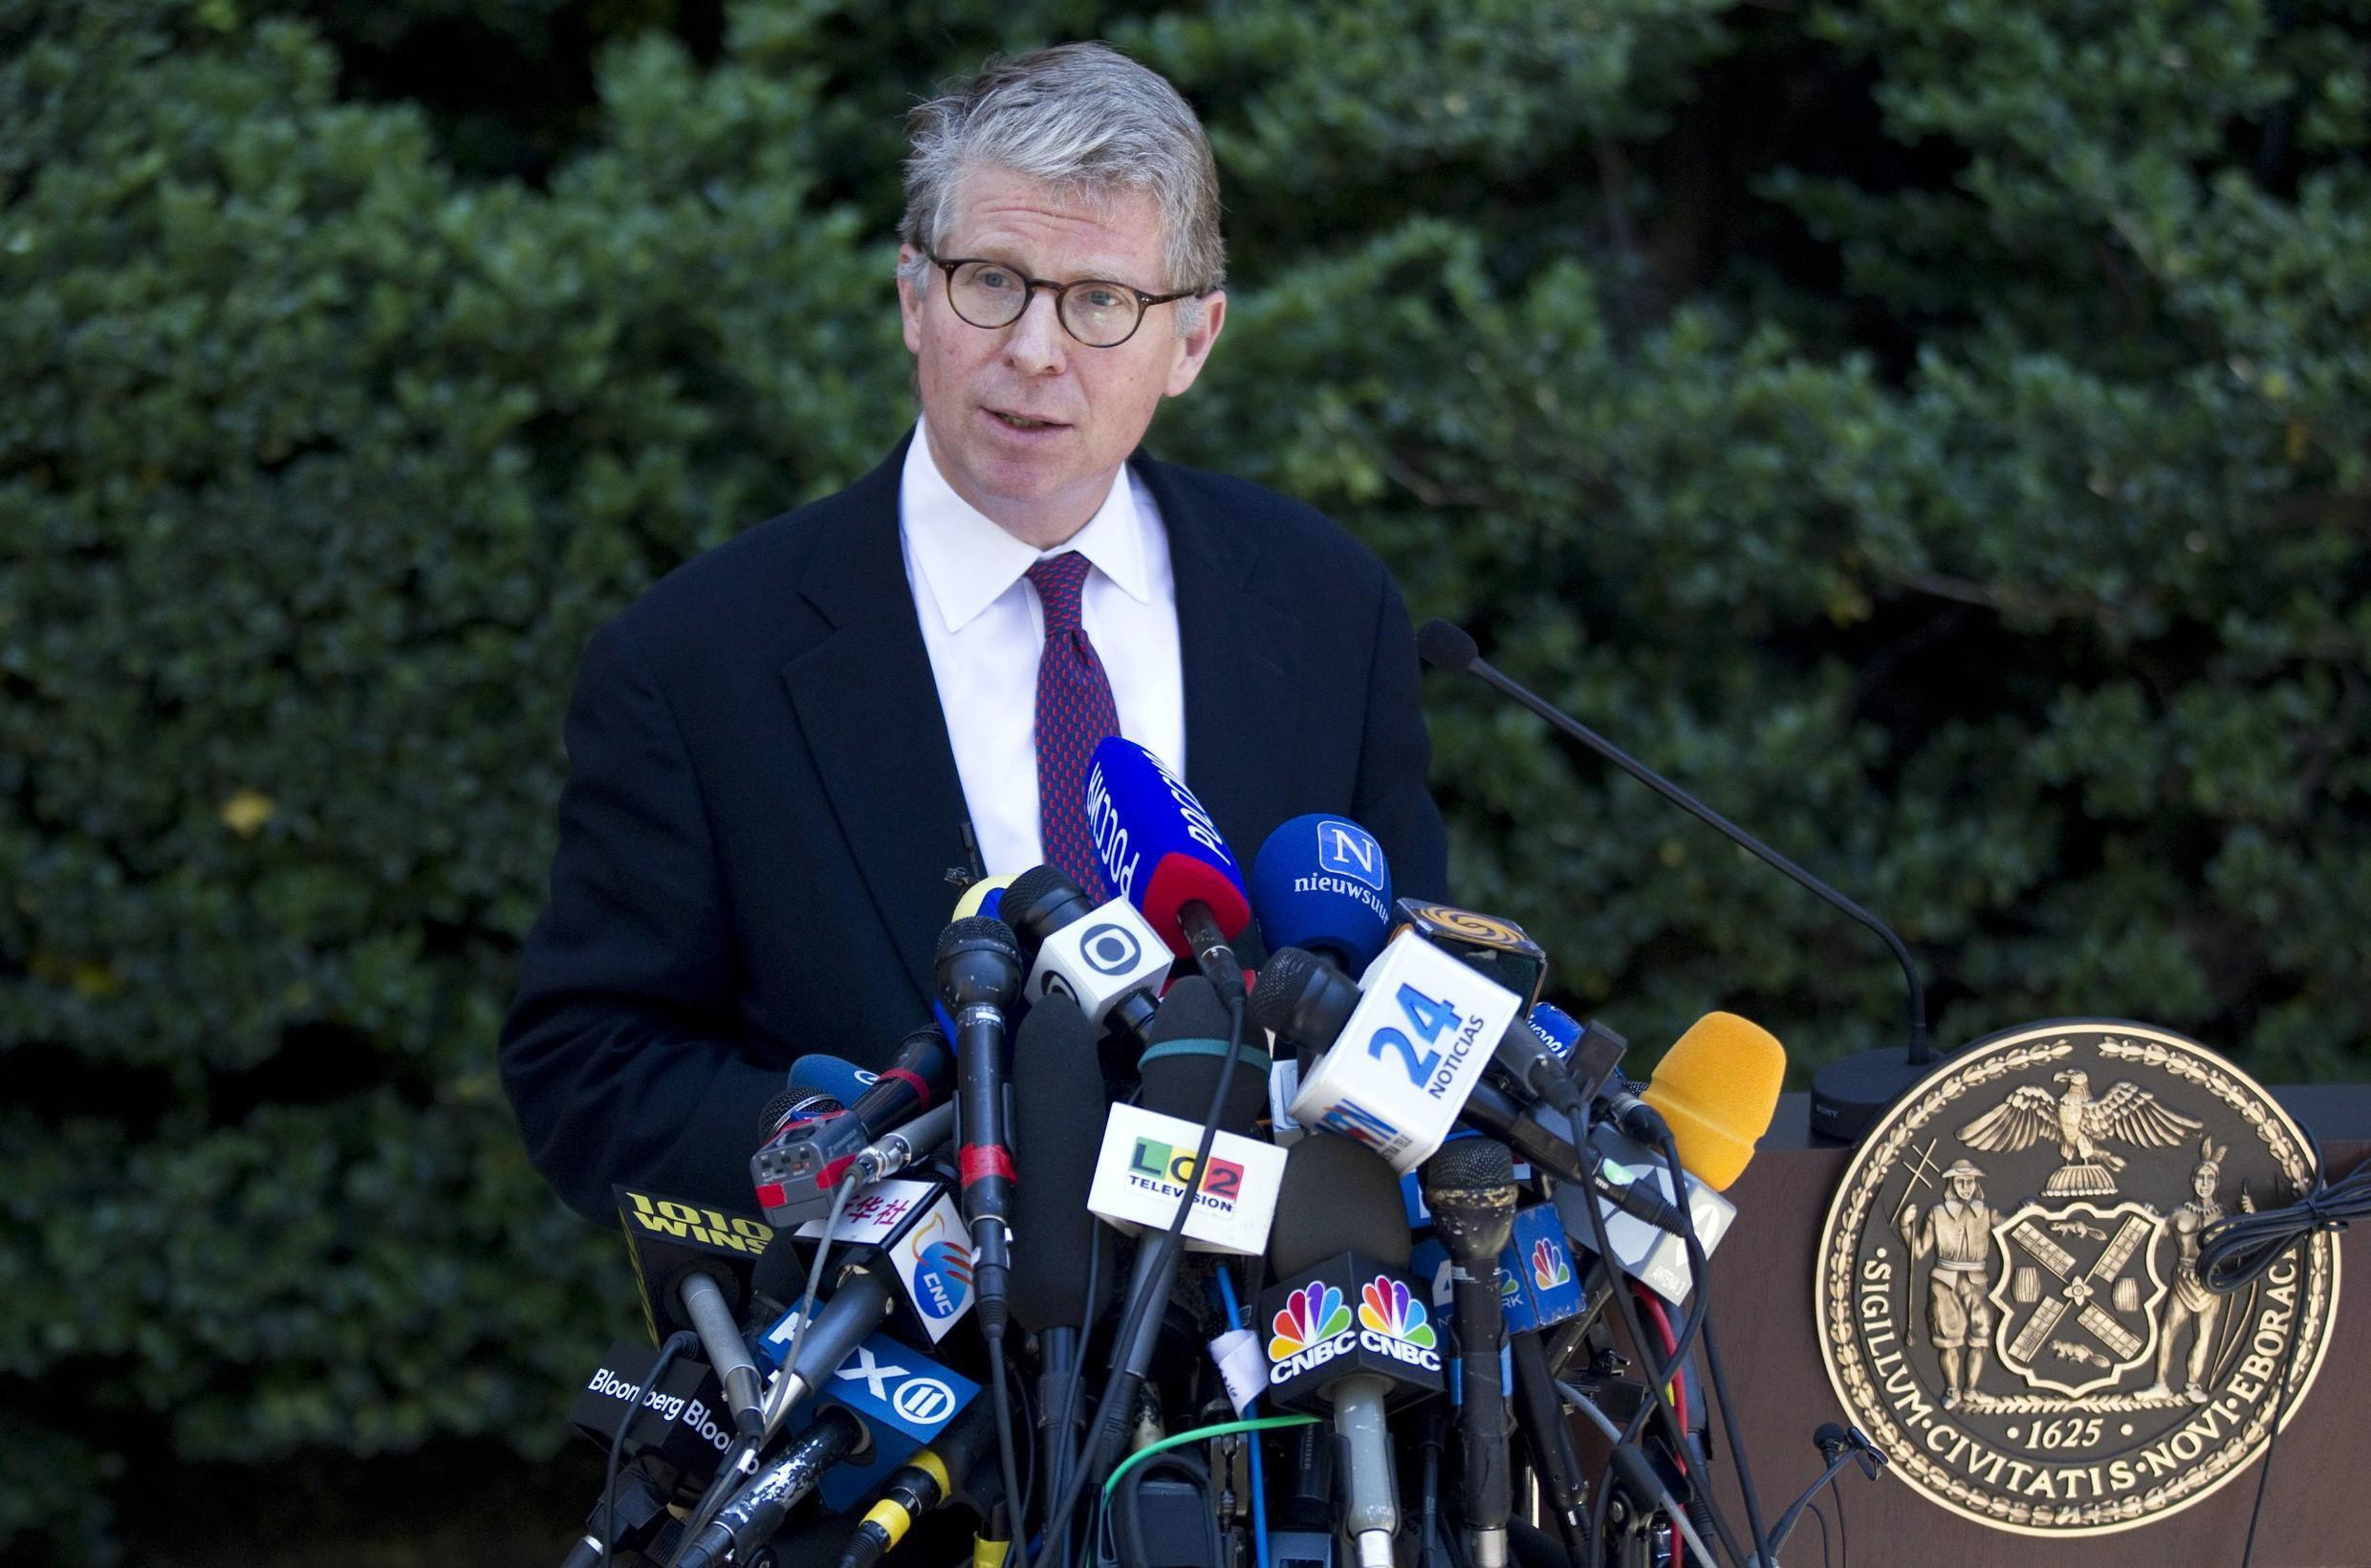 Manhattan prosecutor Cyrus Vance has expressed grave doubts about the credibility of the alleged victim